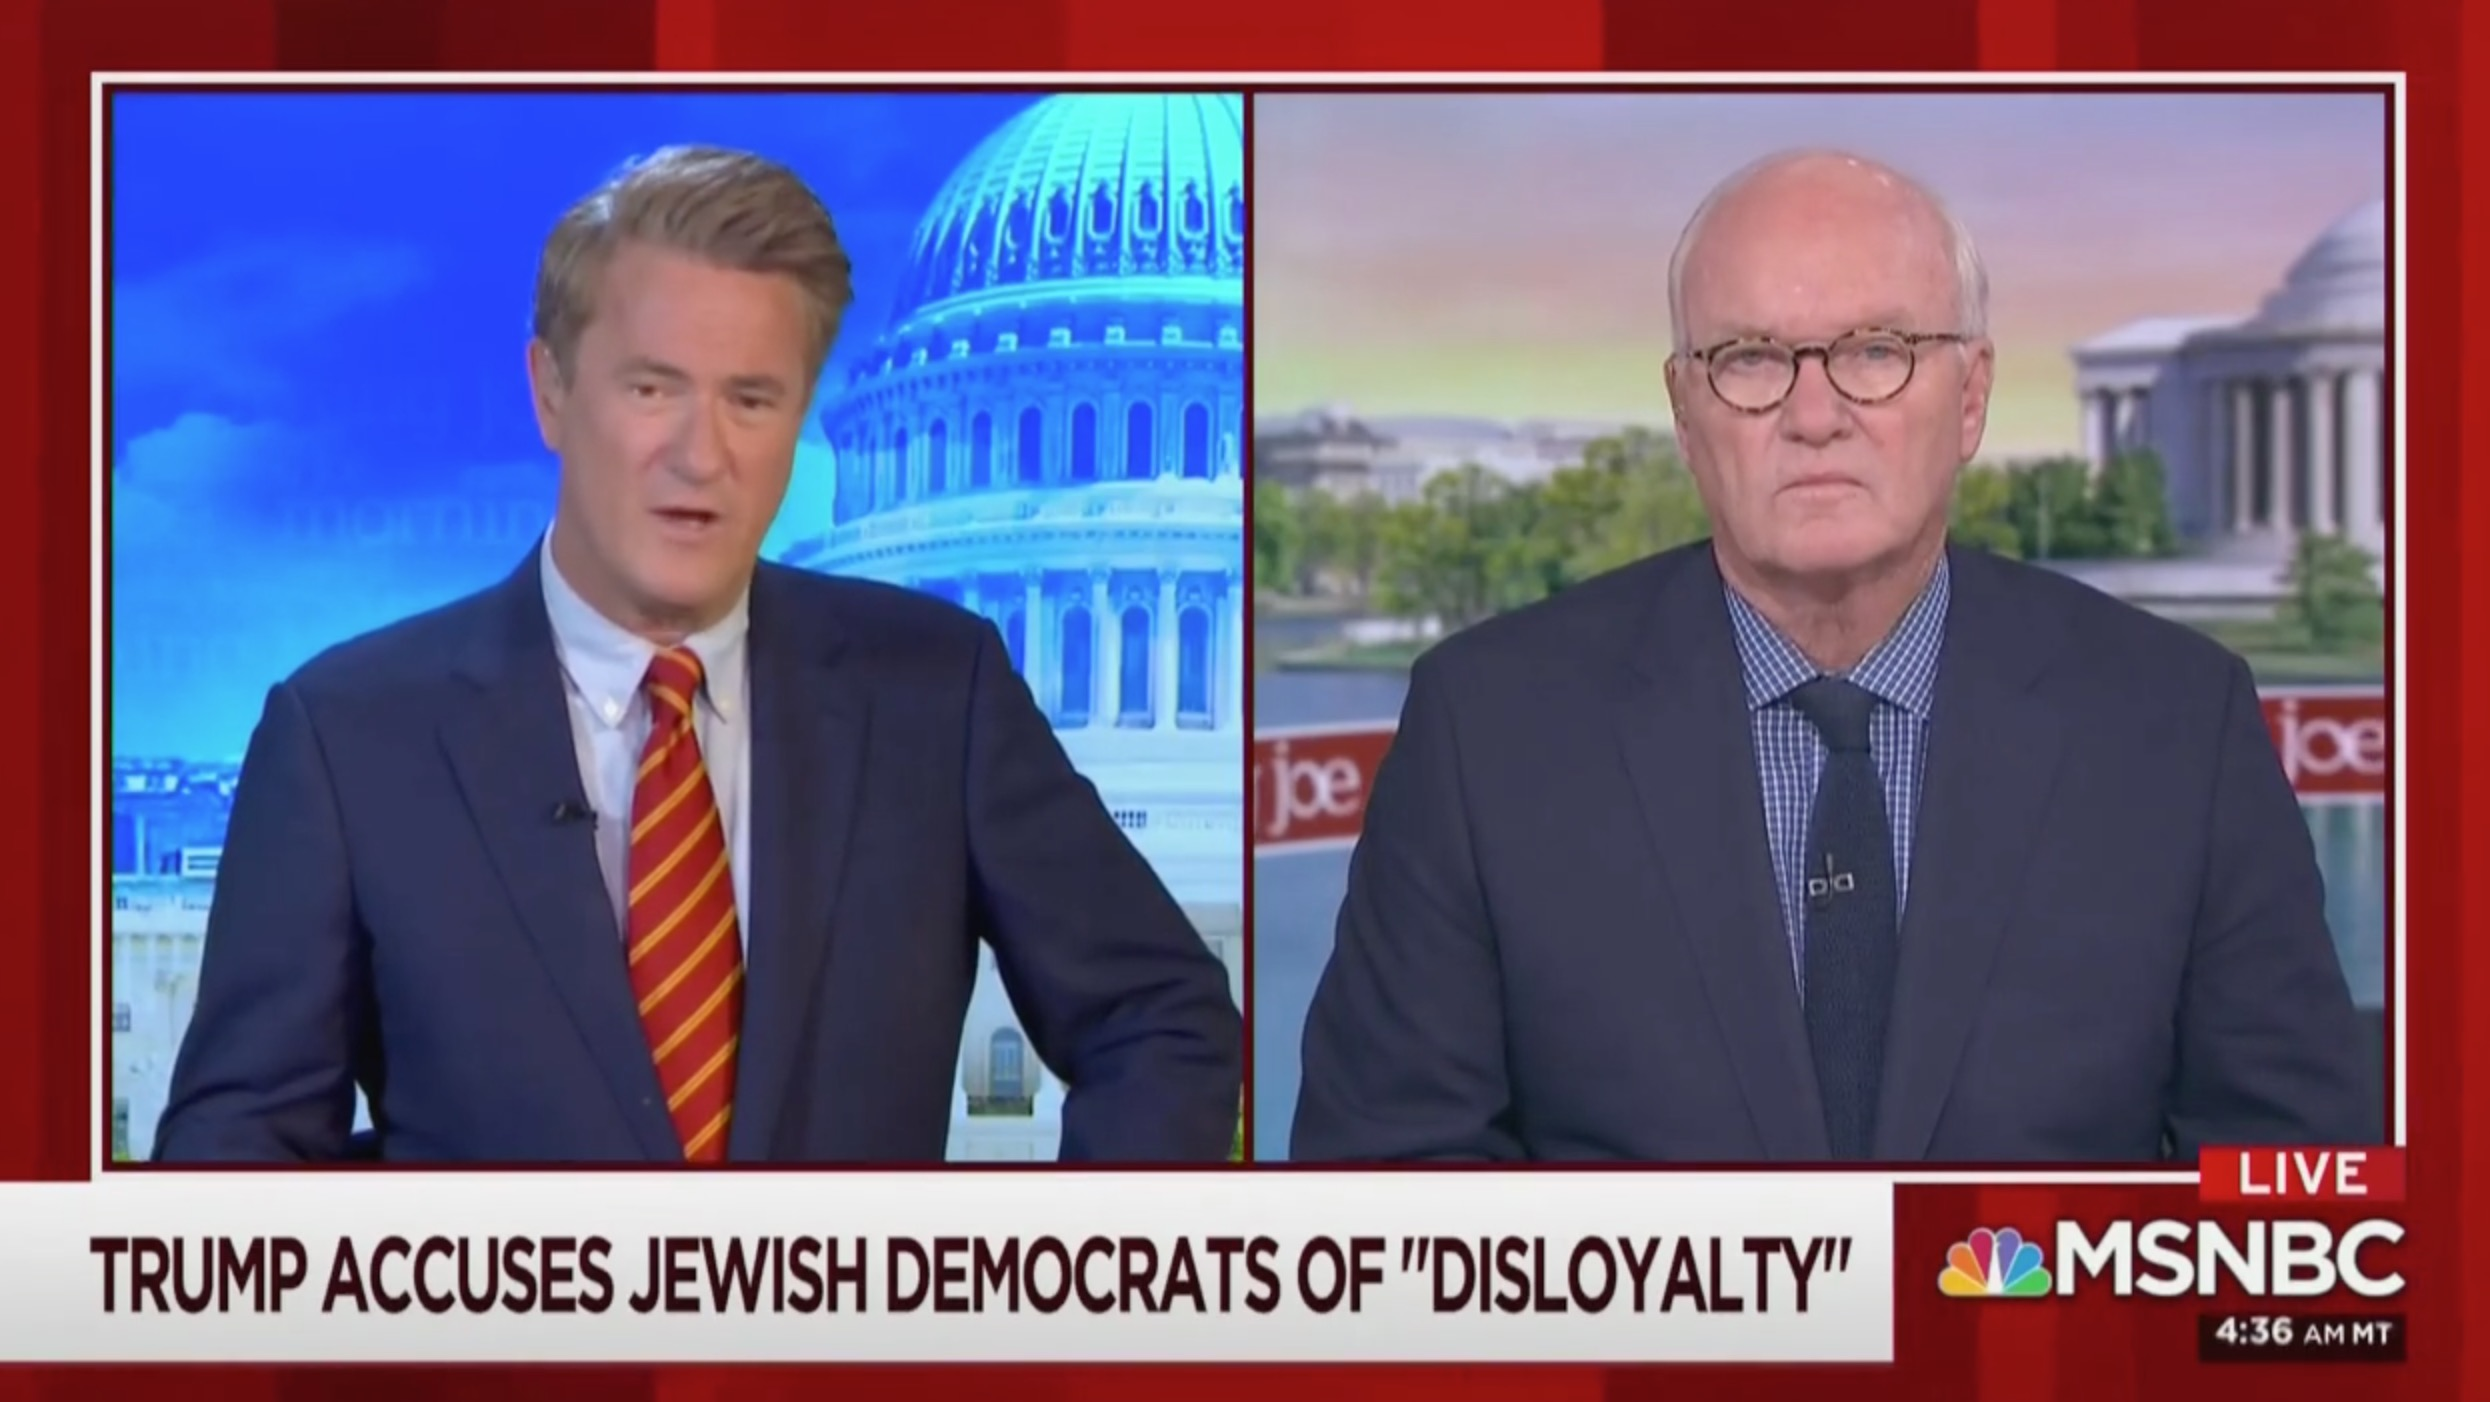 Joe Scarborough: Trump's Attacking Jewish 'Disloyalty' Is Exactly How the Germans Attacked Jews